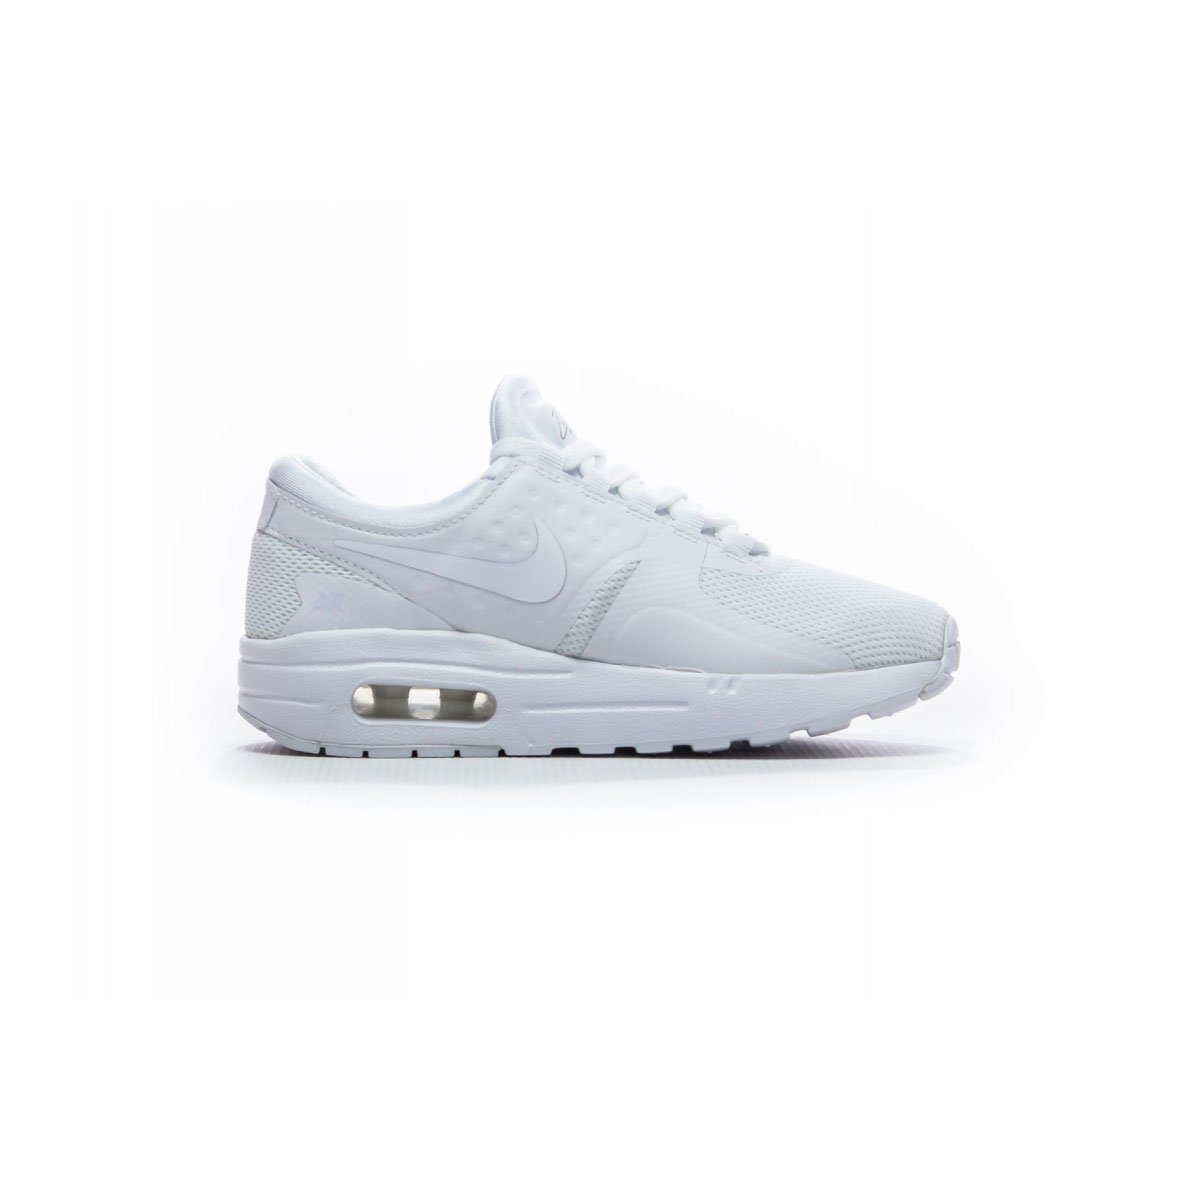 Nike Kids Air Max Zero Essential PS White 881226-100 (Size: 2.5Y) by Nike (Image #1)